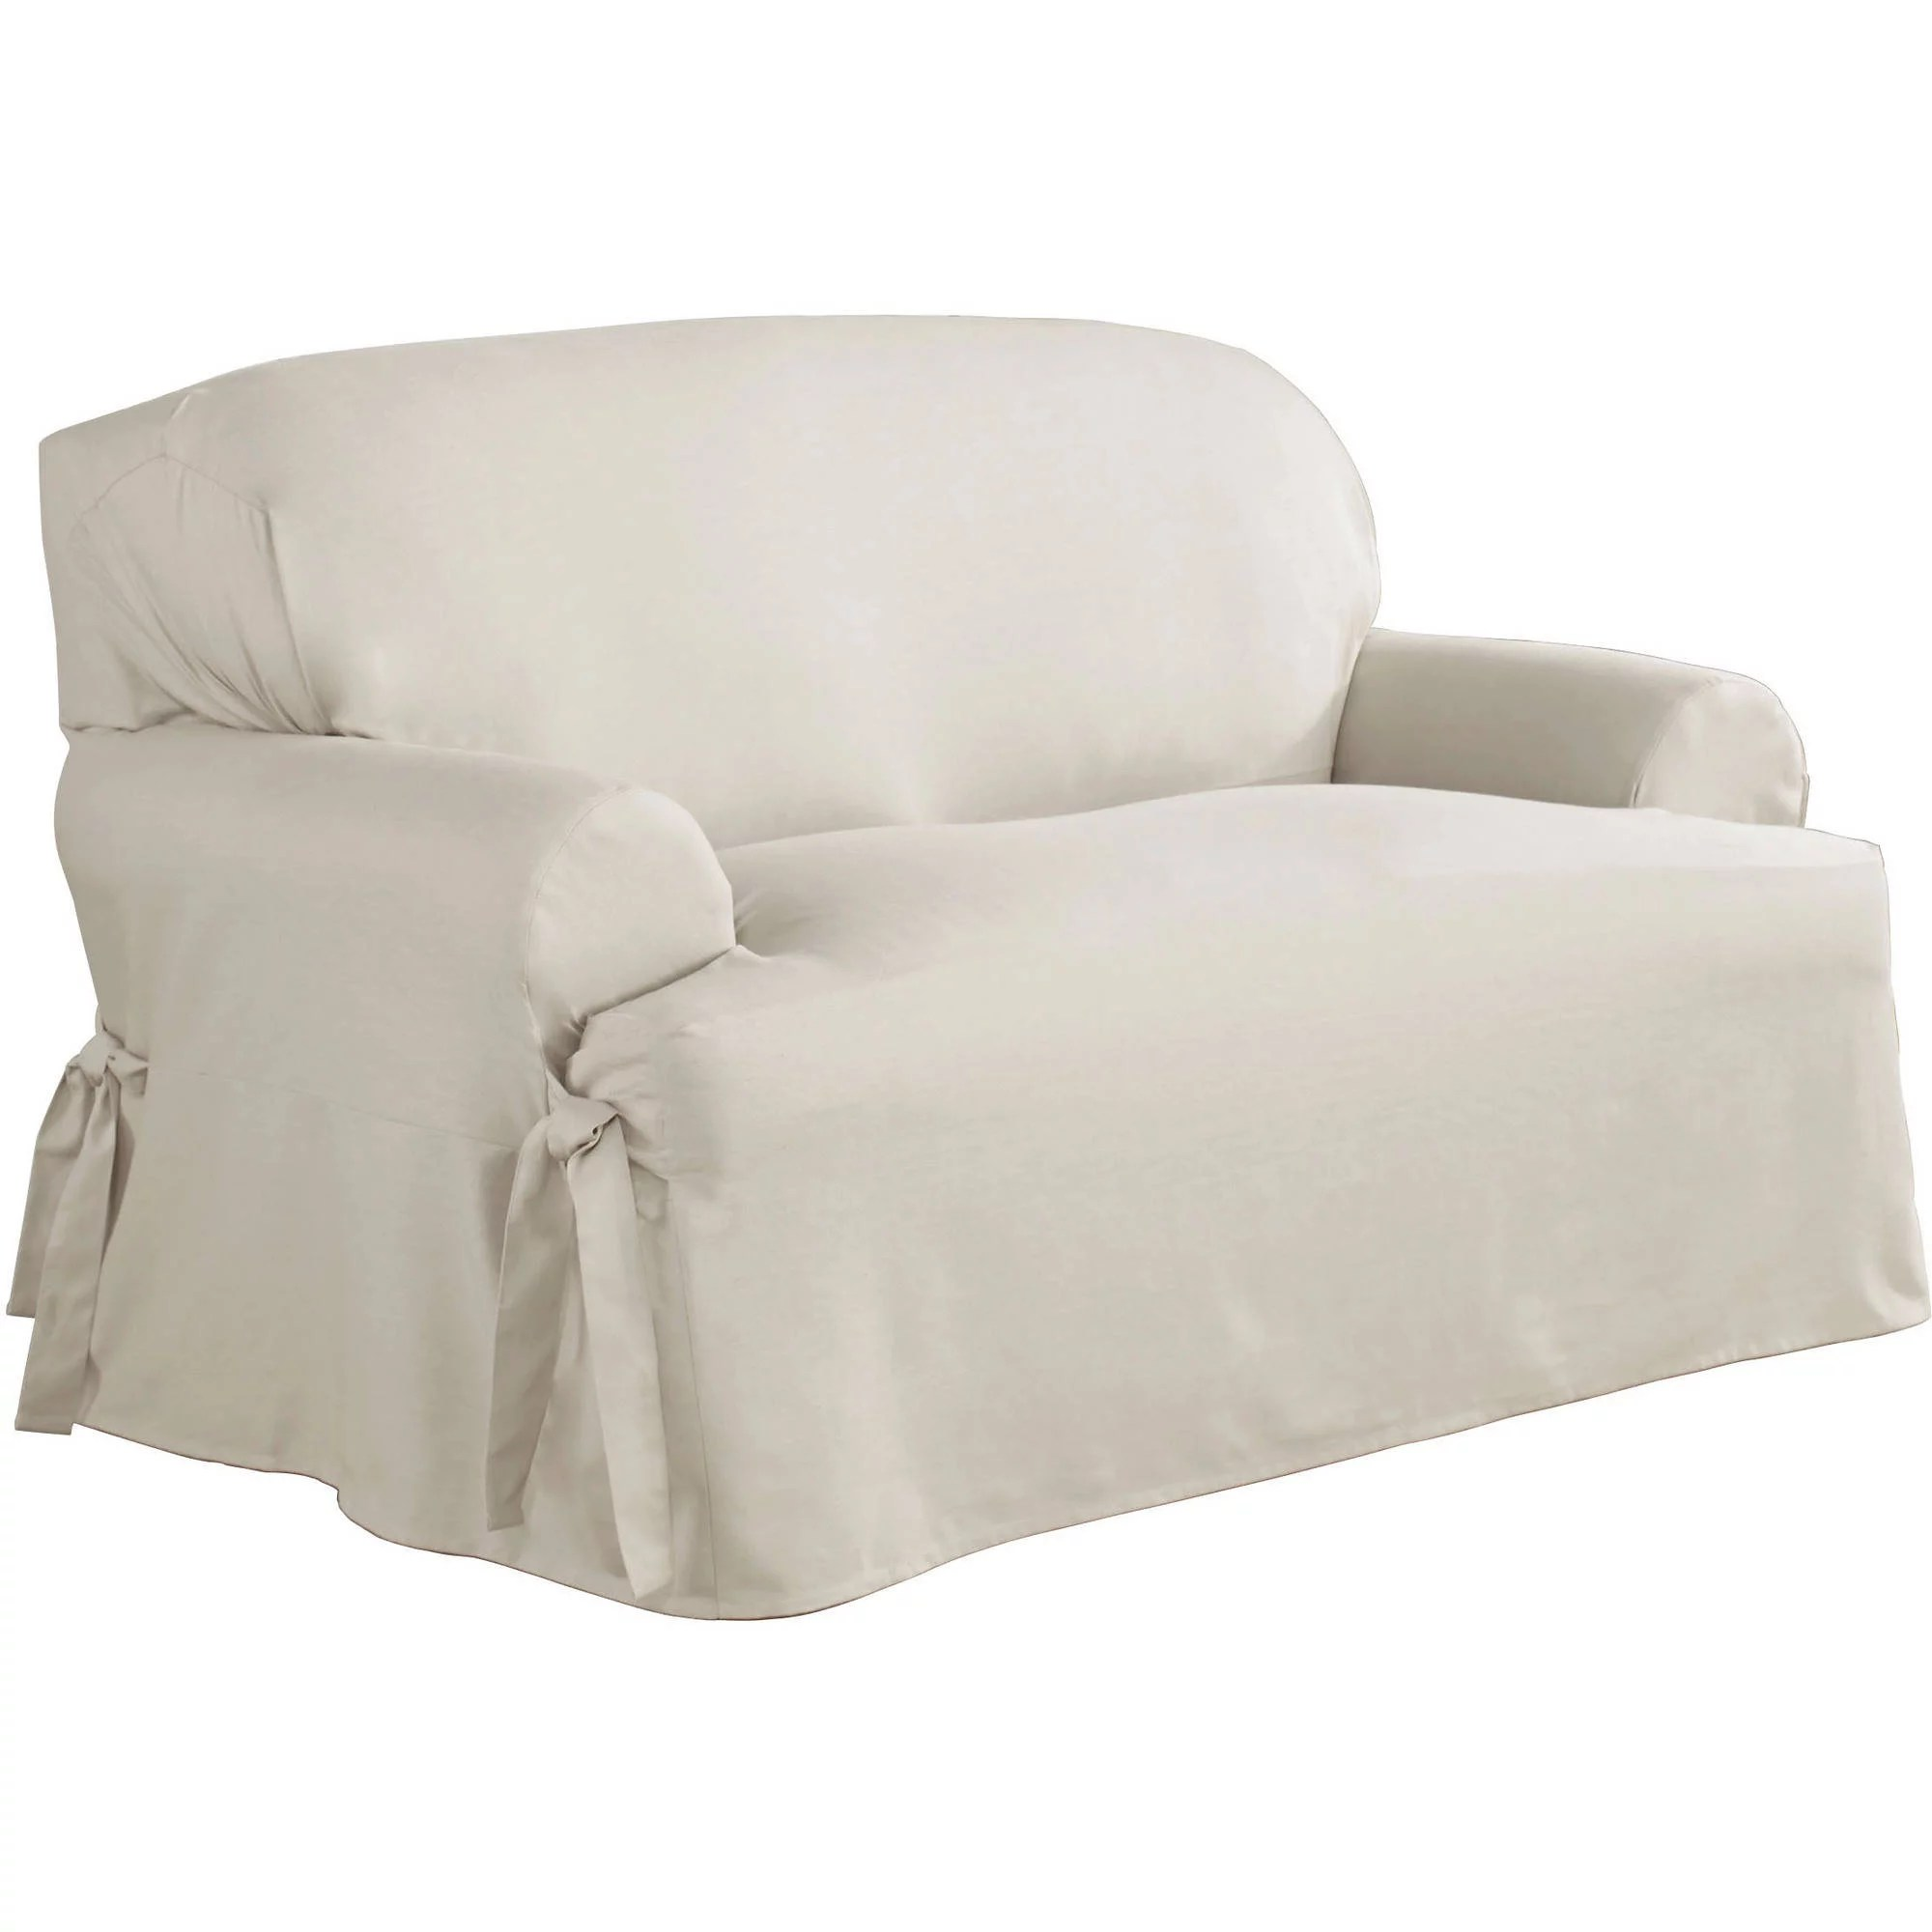 Fitted Slipcovers Couches Serta Relaxed Fit Duck Furniture Slipcover Loveseat 1 Piece T Cushion